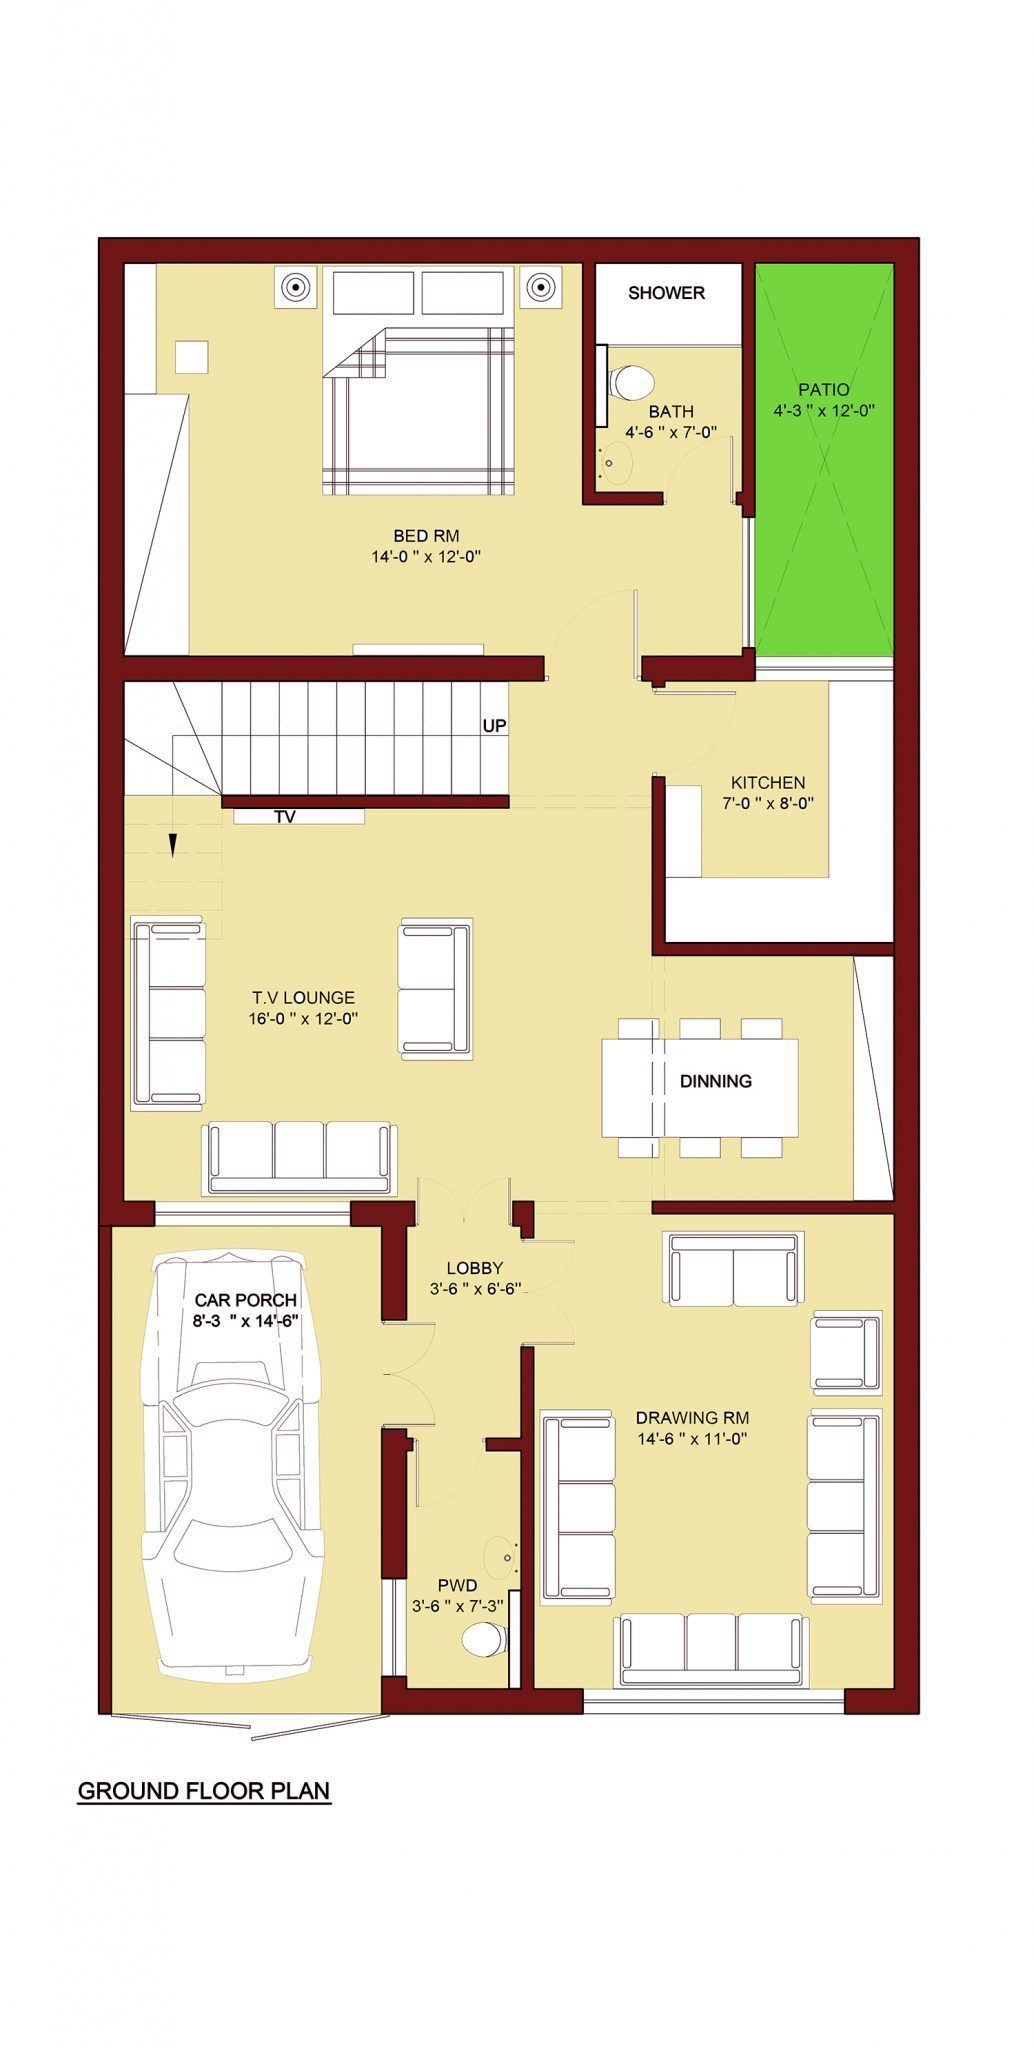 House floor plan house plans pinterest bed room room and house